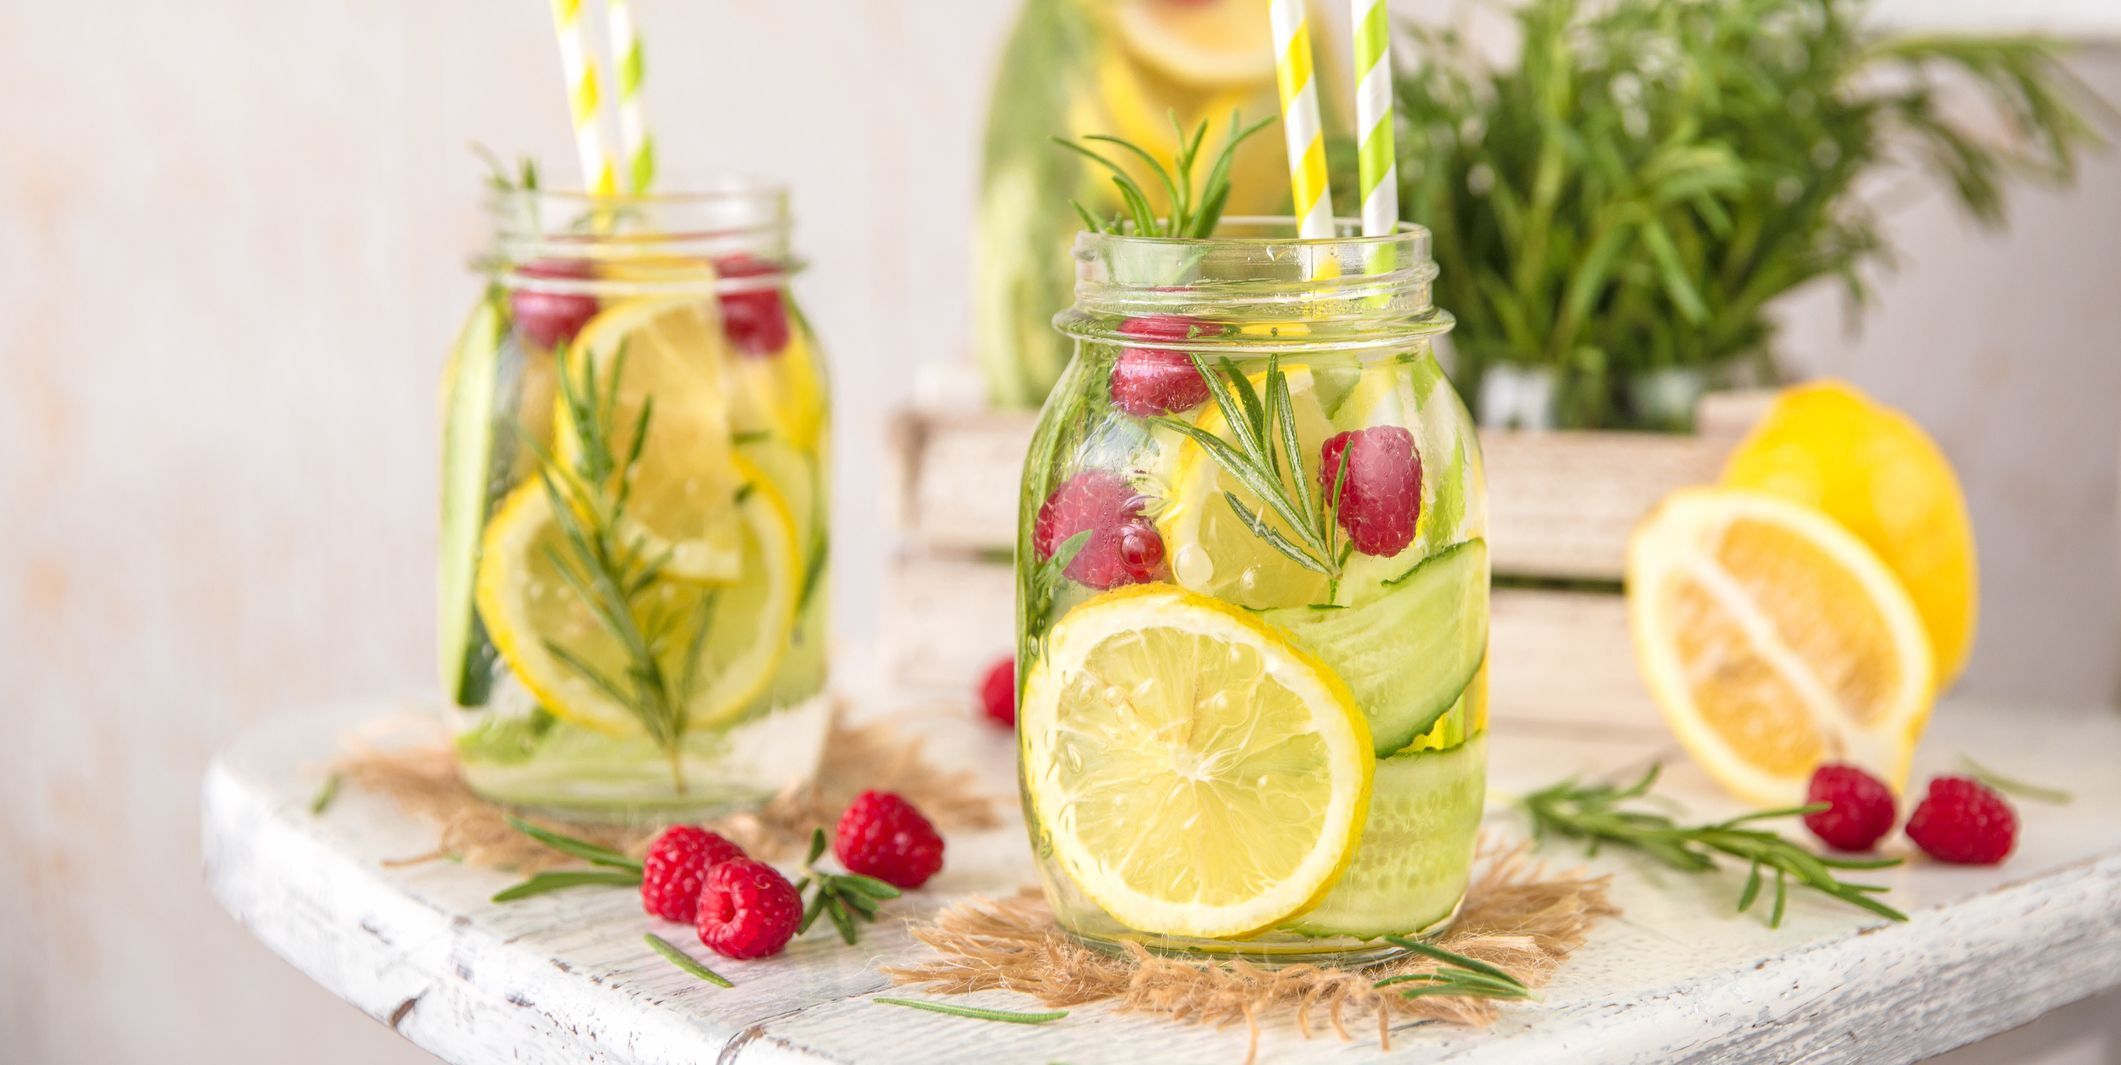 Detox Water with lemon, cucumber, raspberry and rosemary